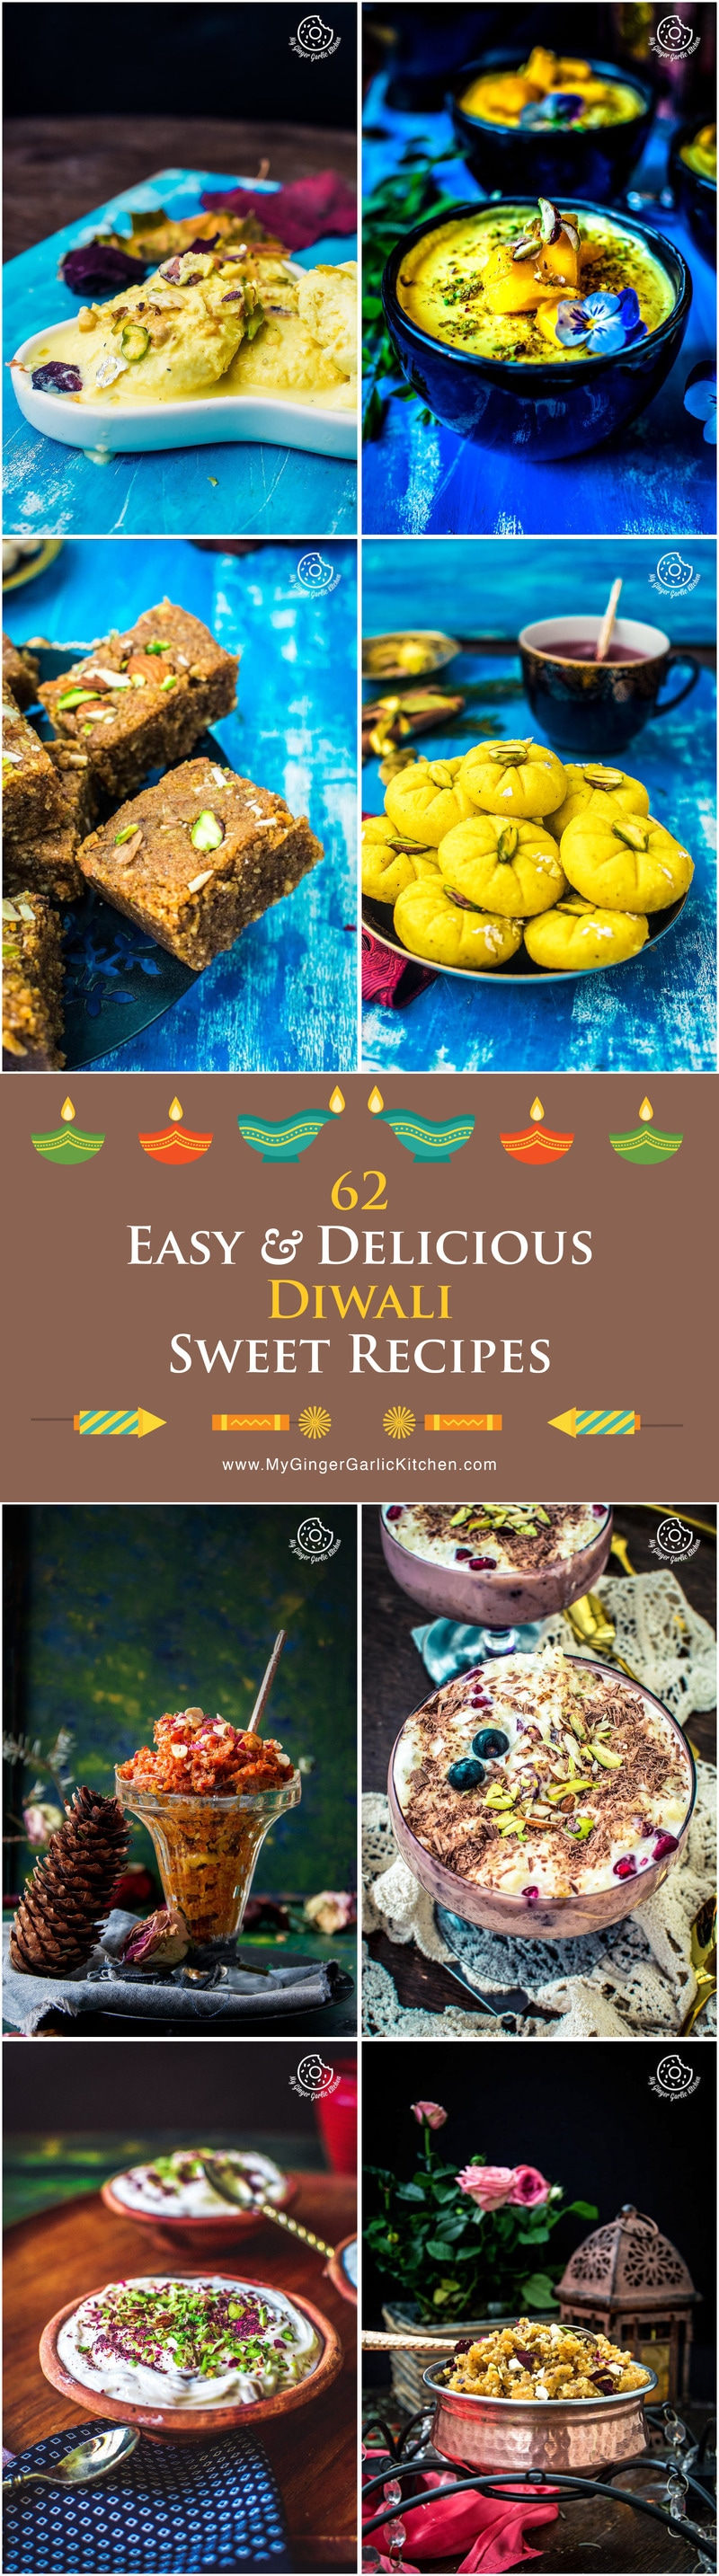 Easy and Delicious Diwali Sweets Recipes | mygingergarlickitchen.com/ @anupama_dreams